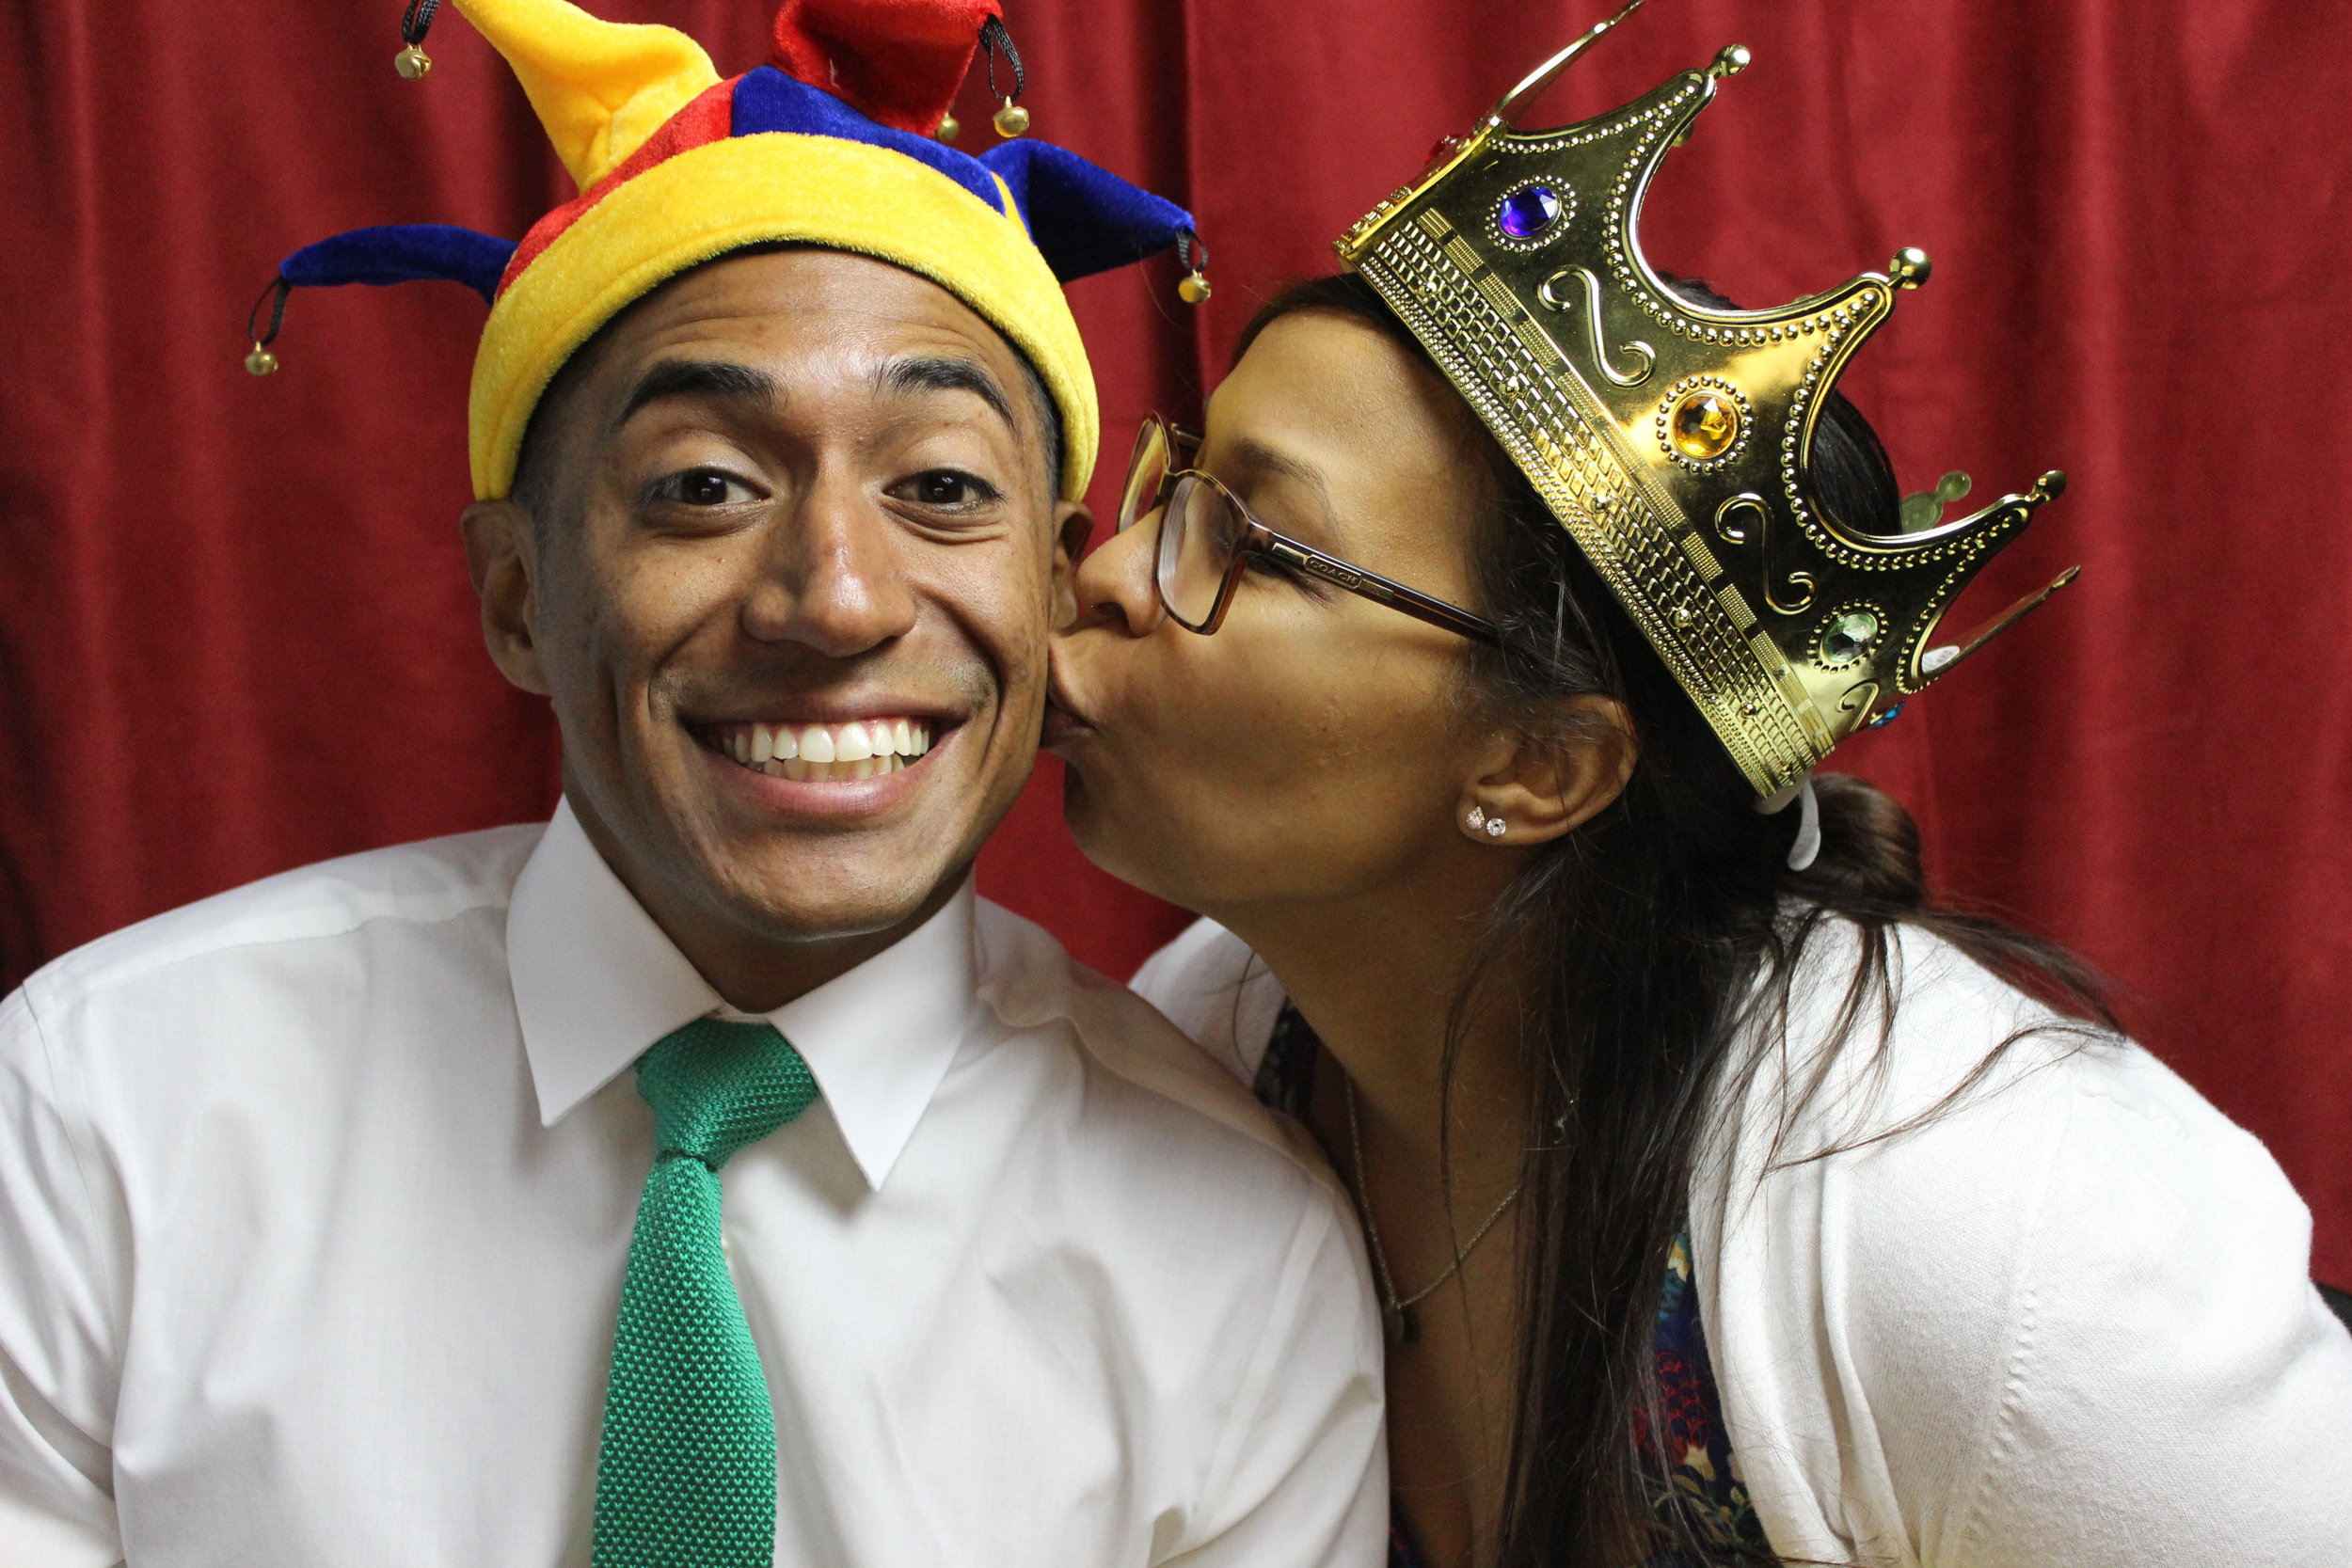 Ann-Marie & Maurice Photo Booth Wedding (129).jpg